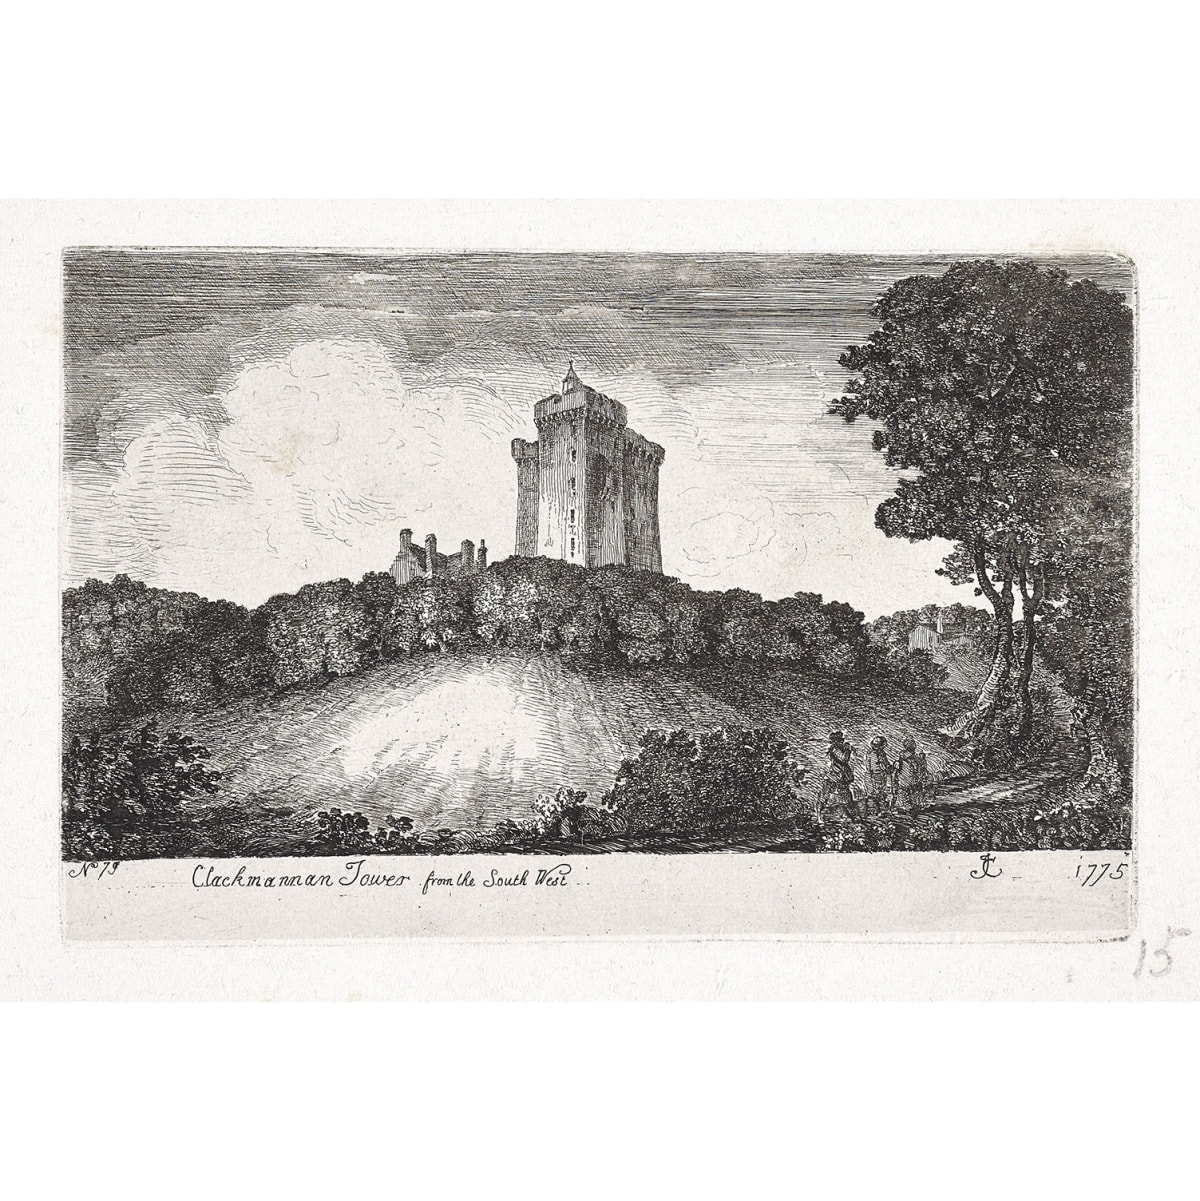 John Clerk of Eldin Clackmannan Tower from the South West, 1775 titled, inscribed 'No.79'; initialled JC and dated 1775 etching and drypoint 4 x 6 1/4 inches only state